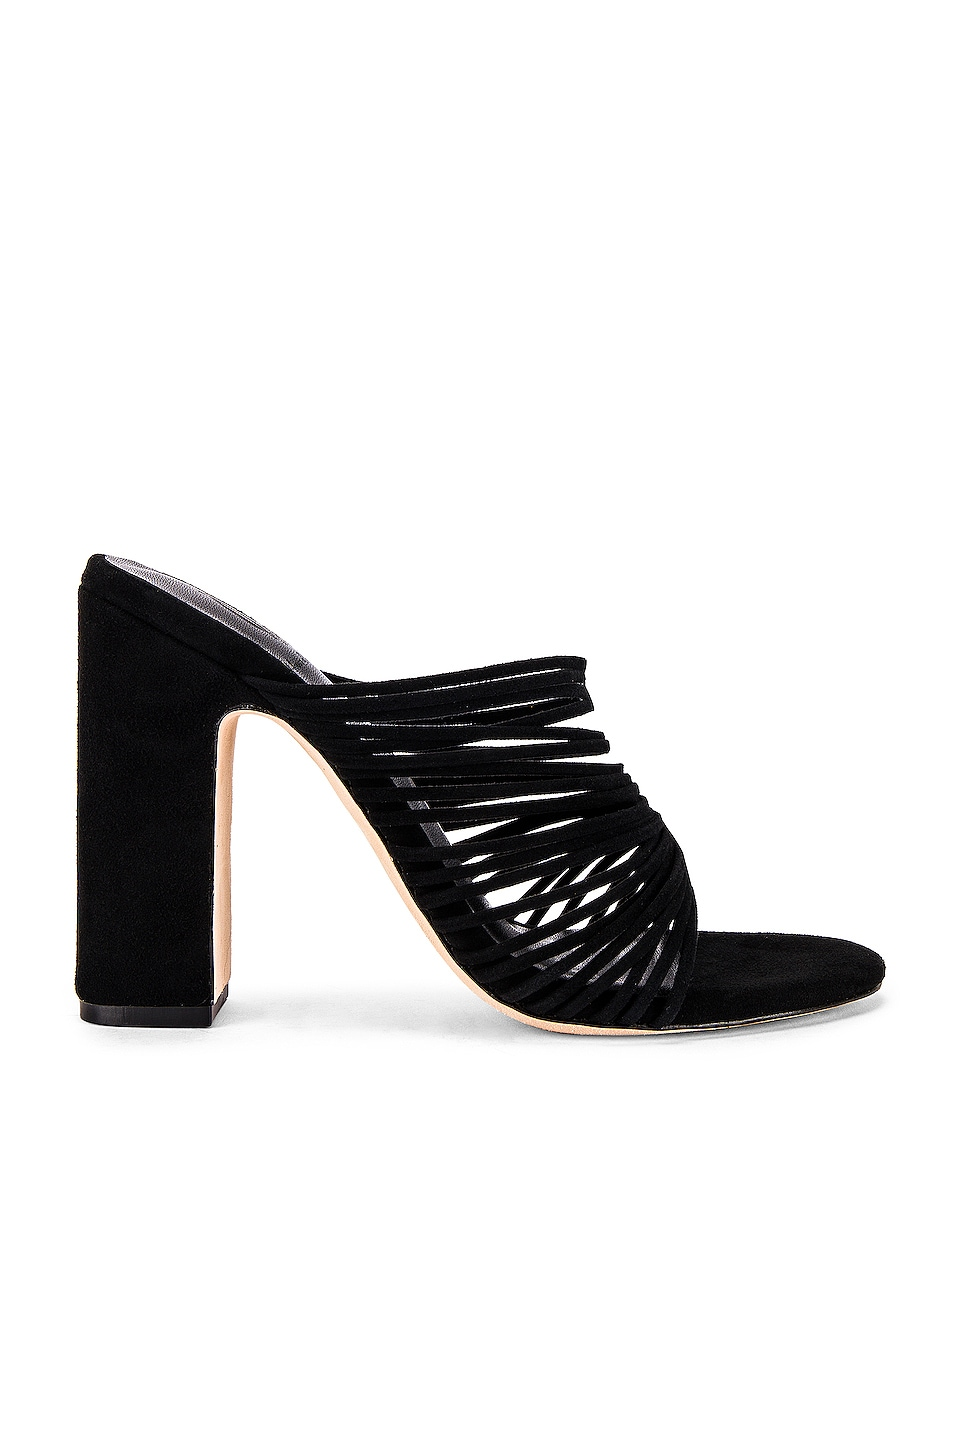 House of Harlow 1960 X REVOLVE Fawn Heel in Black